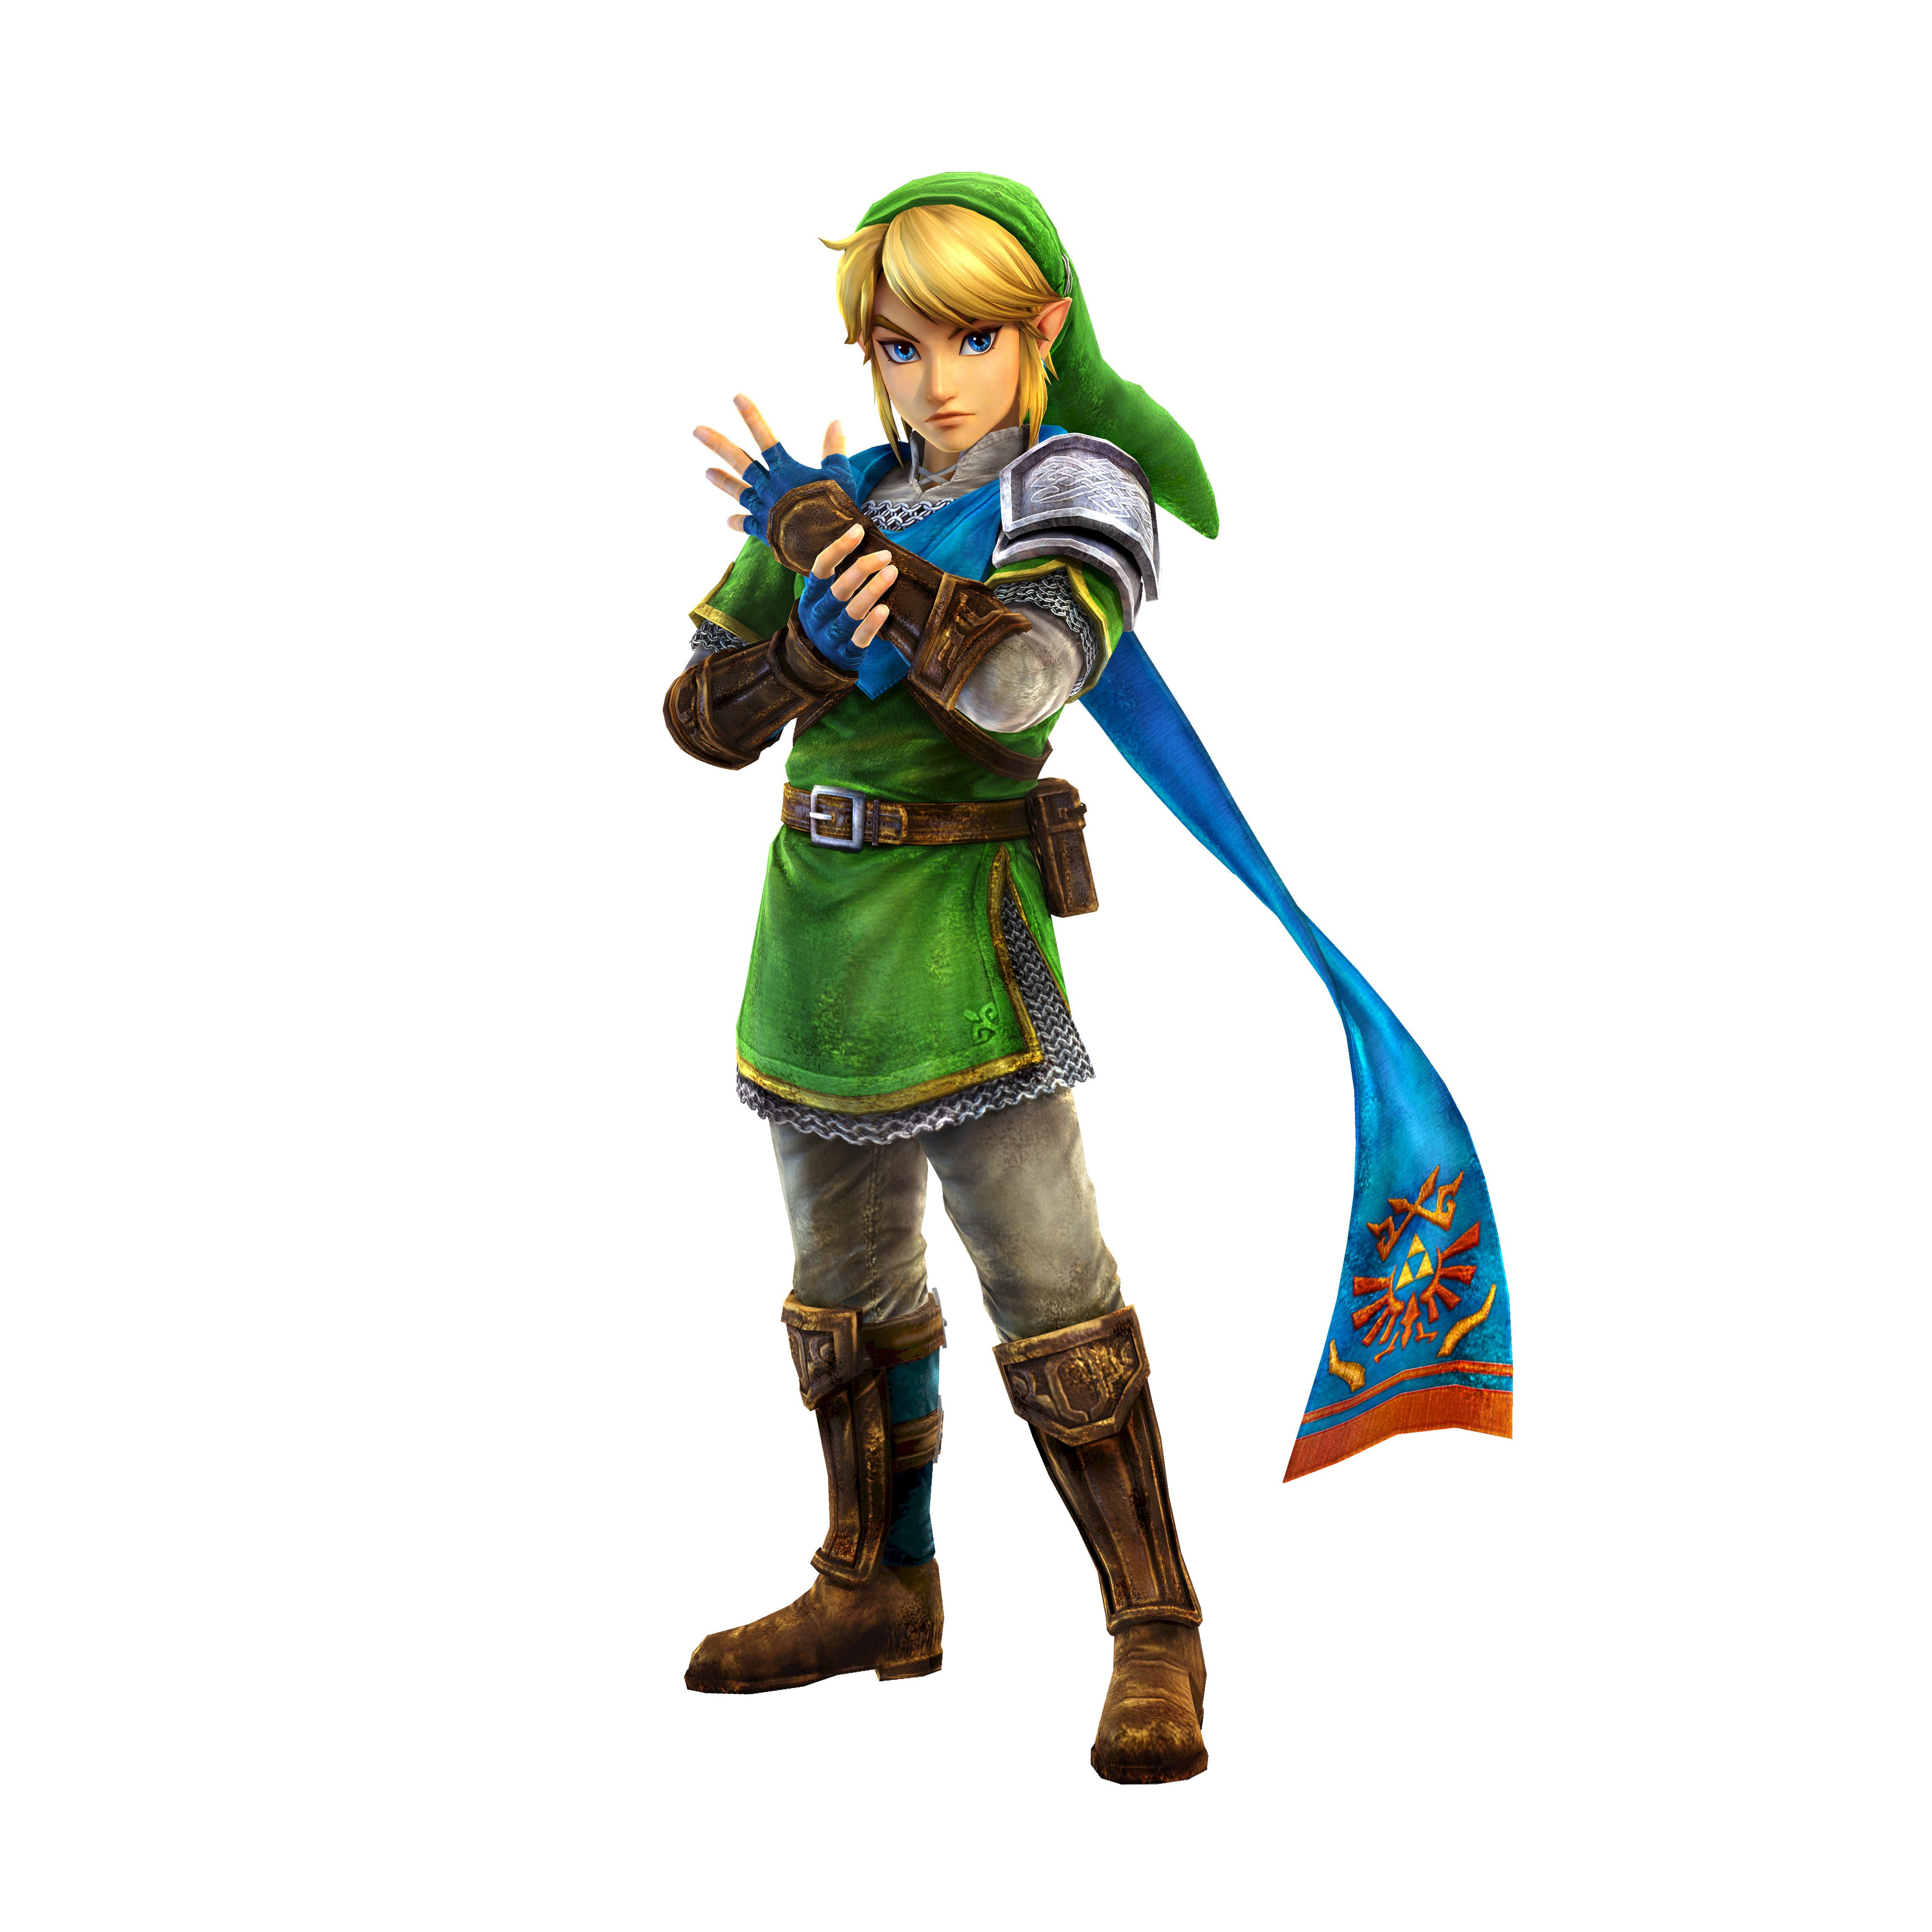 Hyrule Warriors Link Fullbody Reference Hyrule Warriors Link Hyrule Warriors Zelda Hyrule Warriors